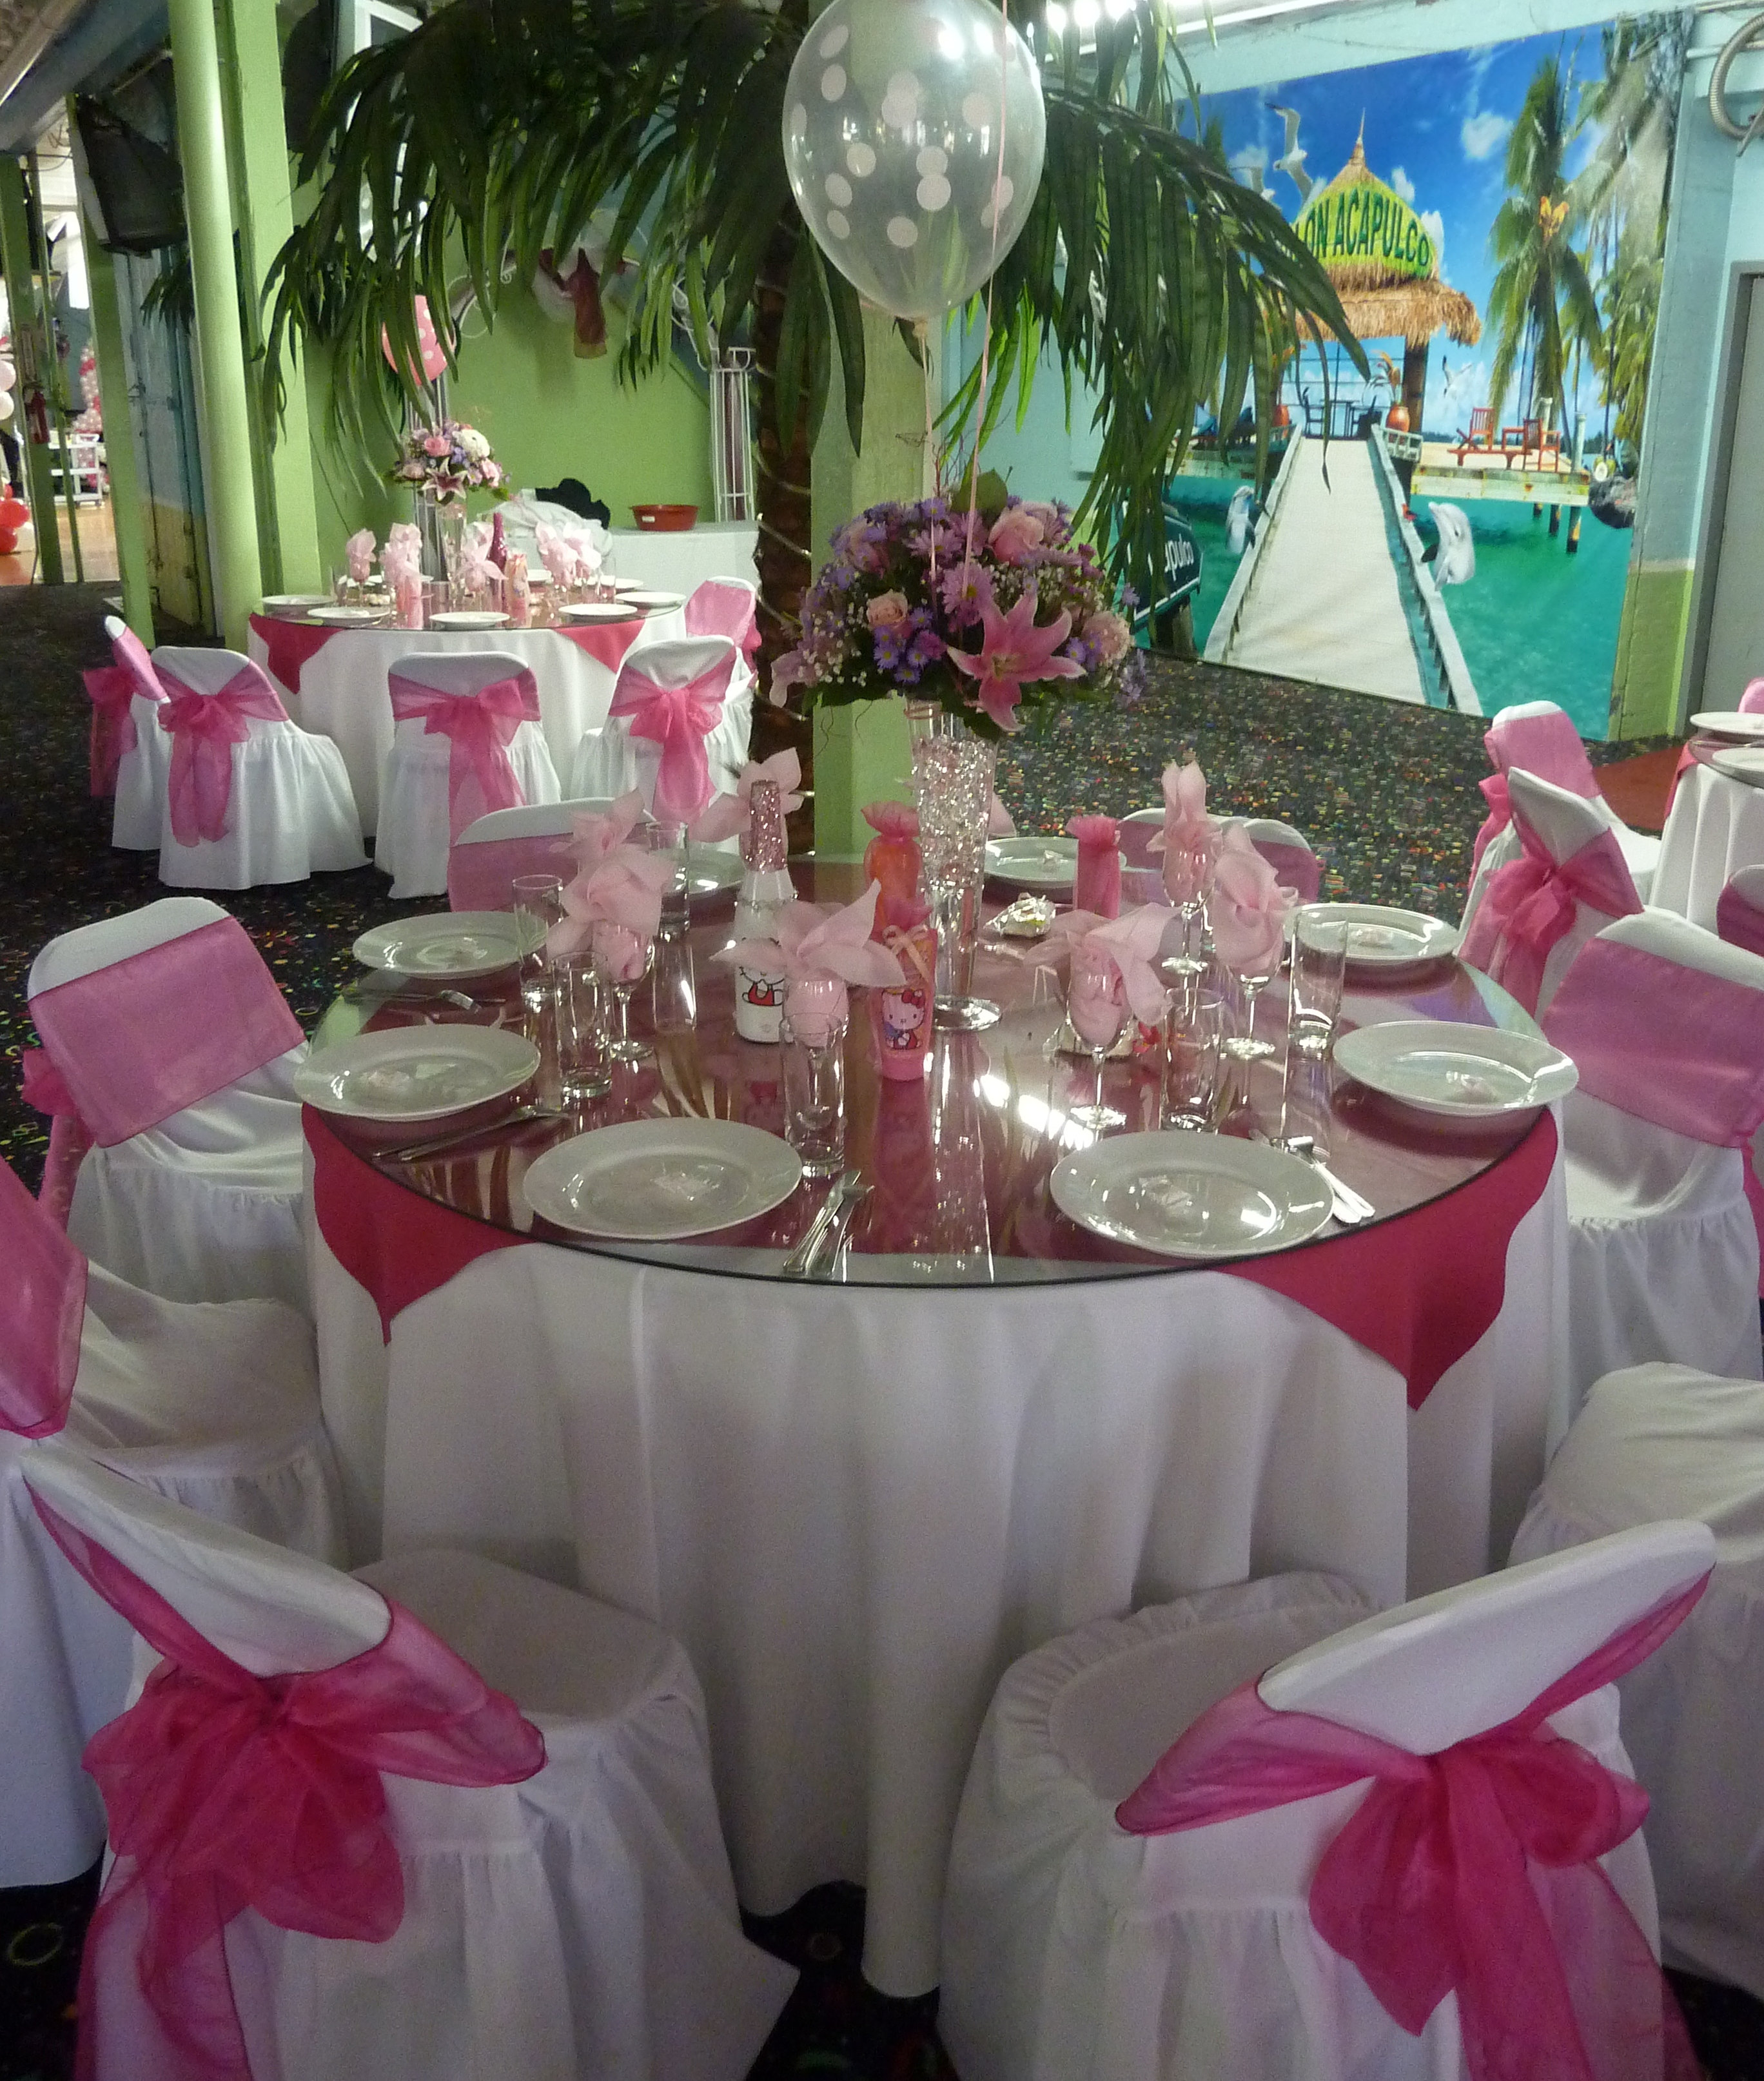 Salonacapulco Banquet Hall Table Set Up